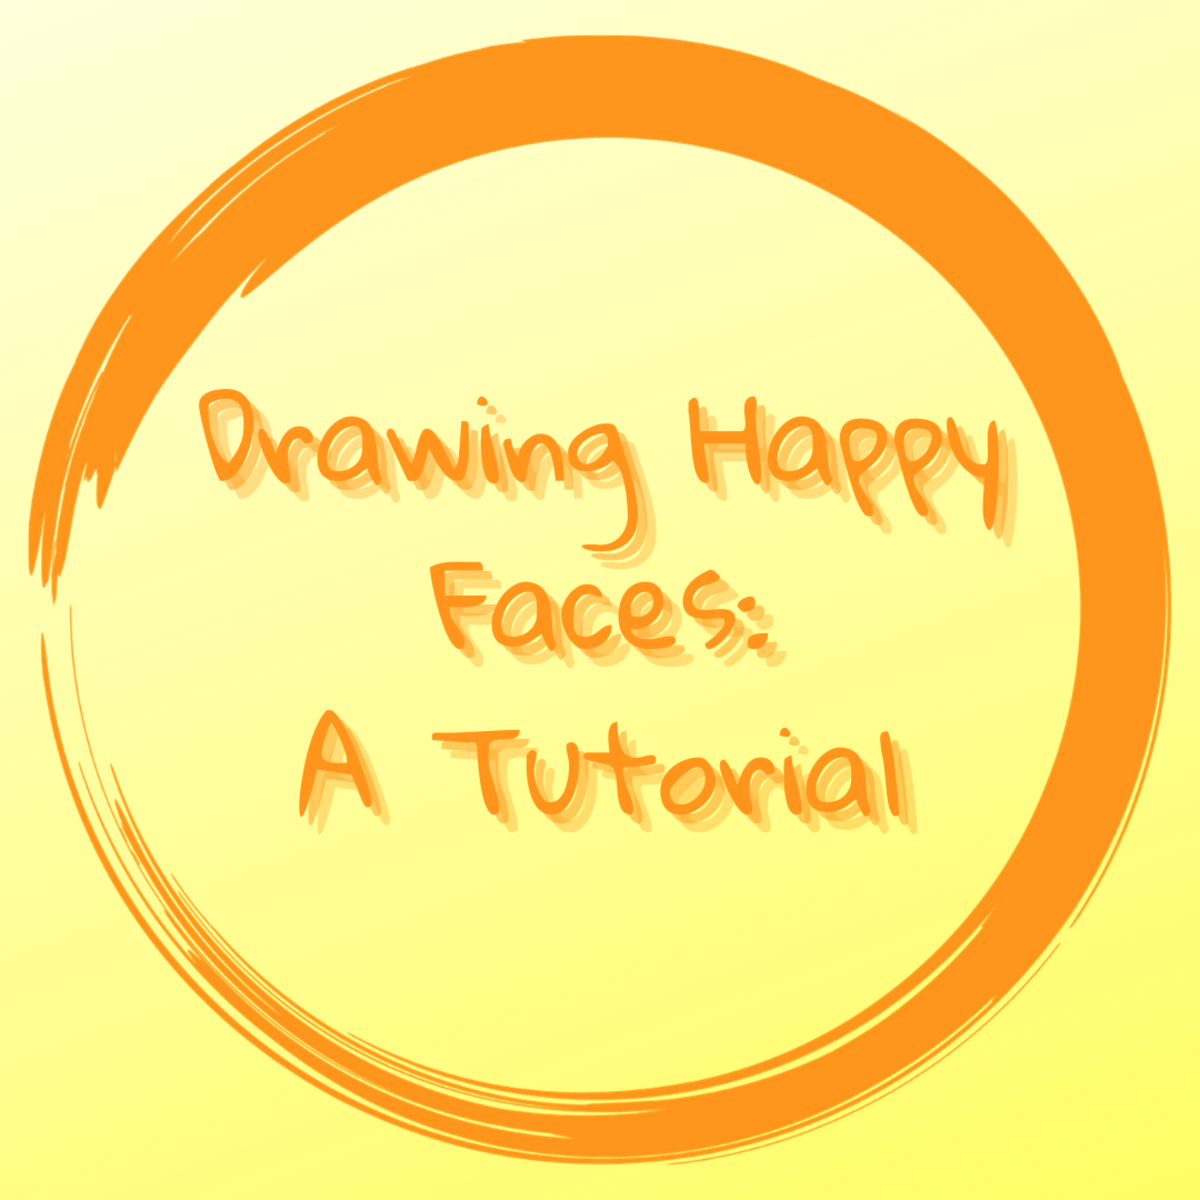 This drawing tutorial will teach you how to easily draw your own happy faces